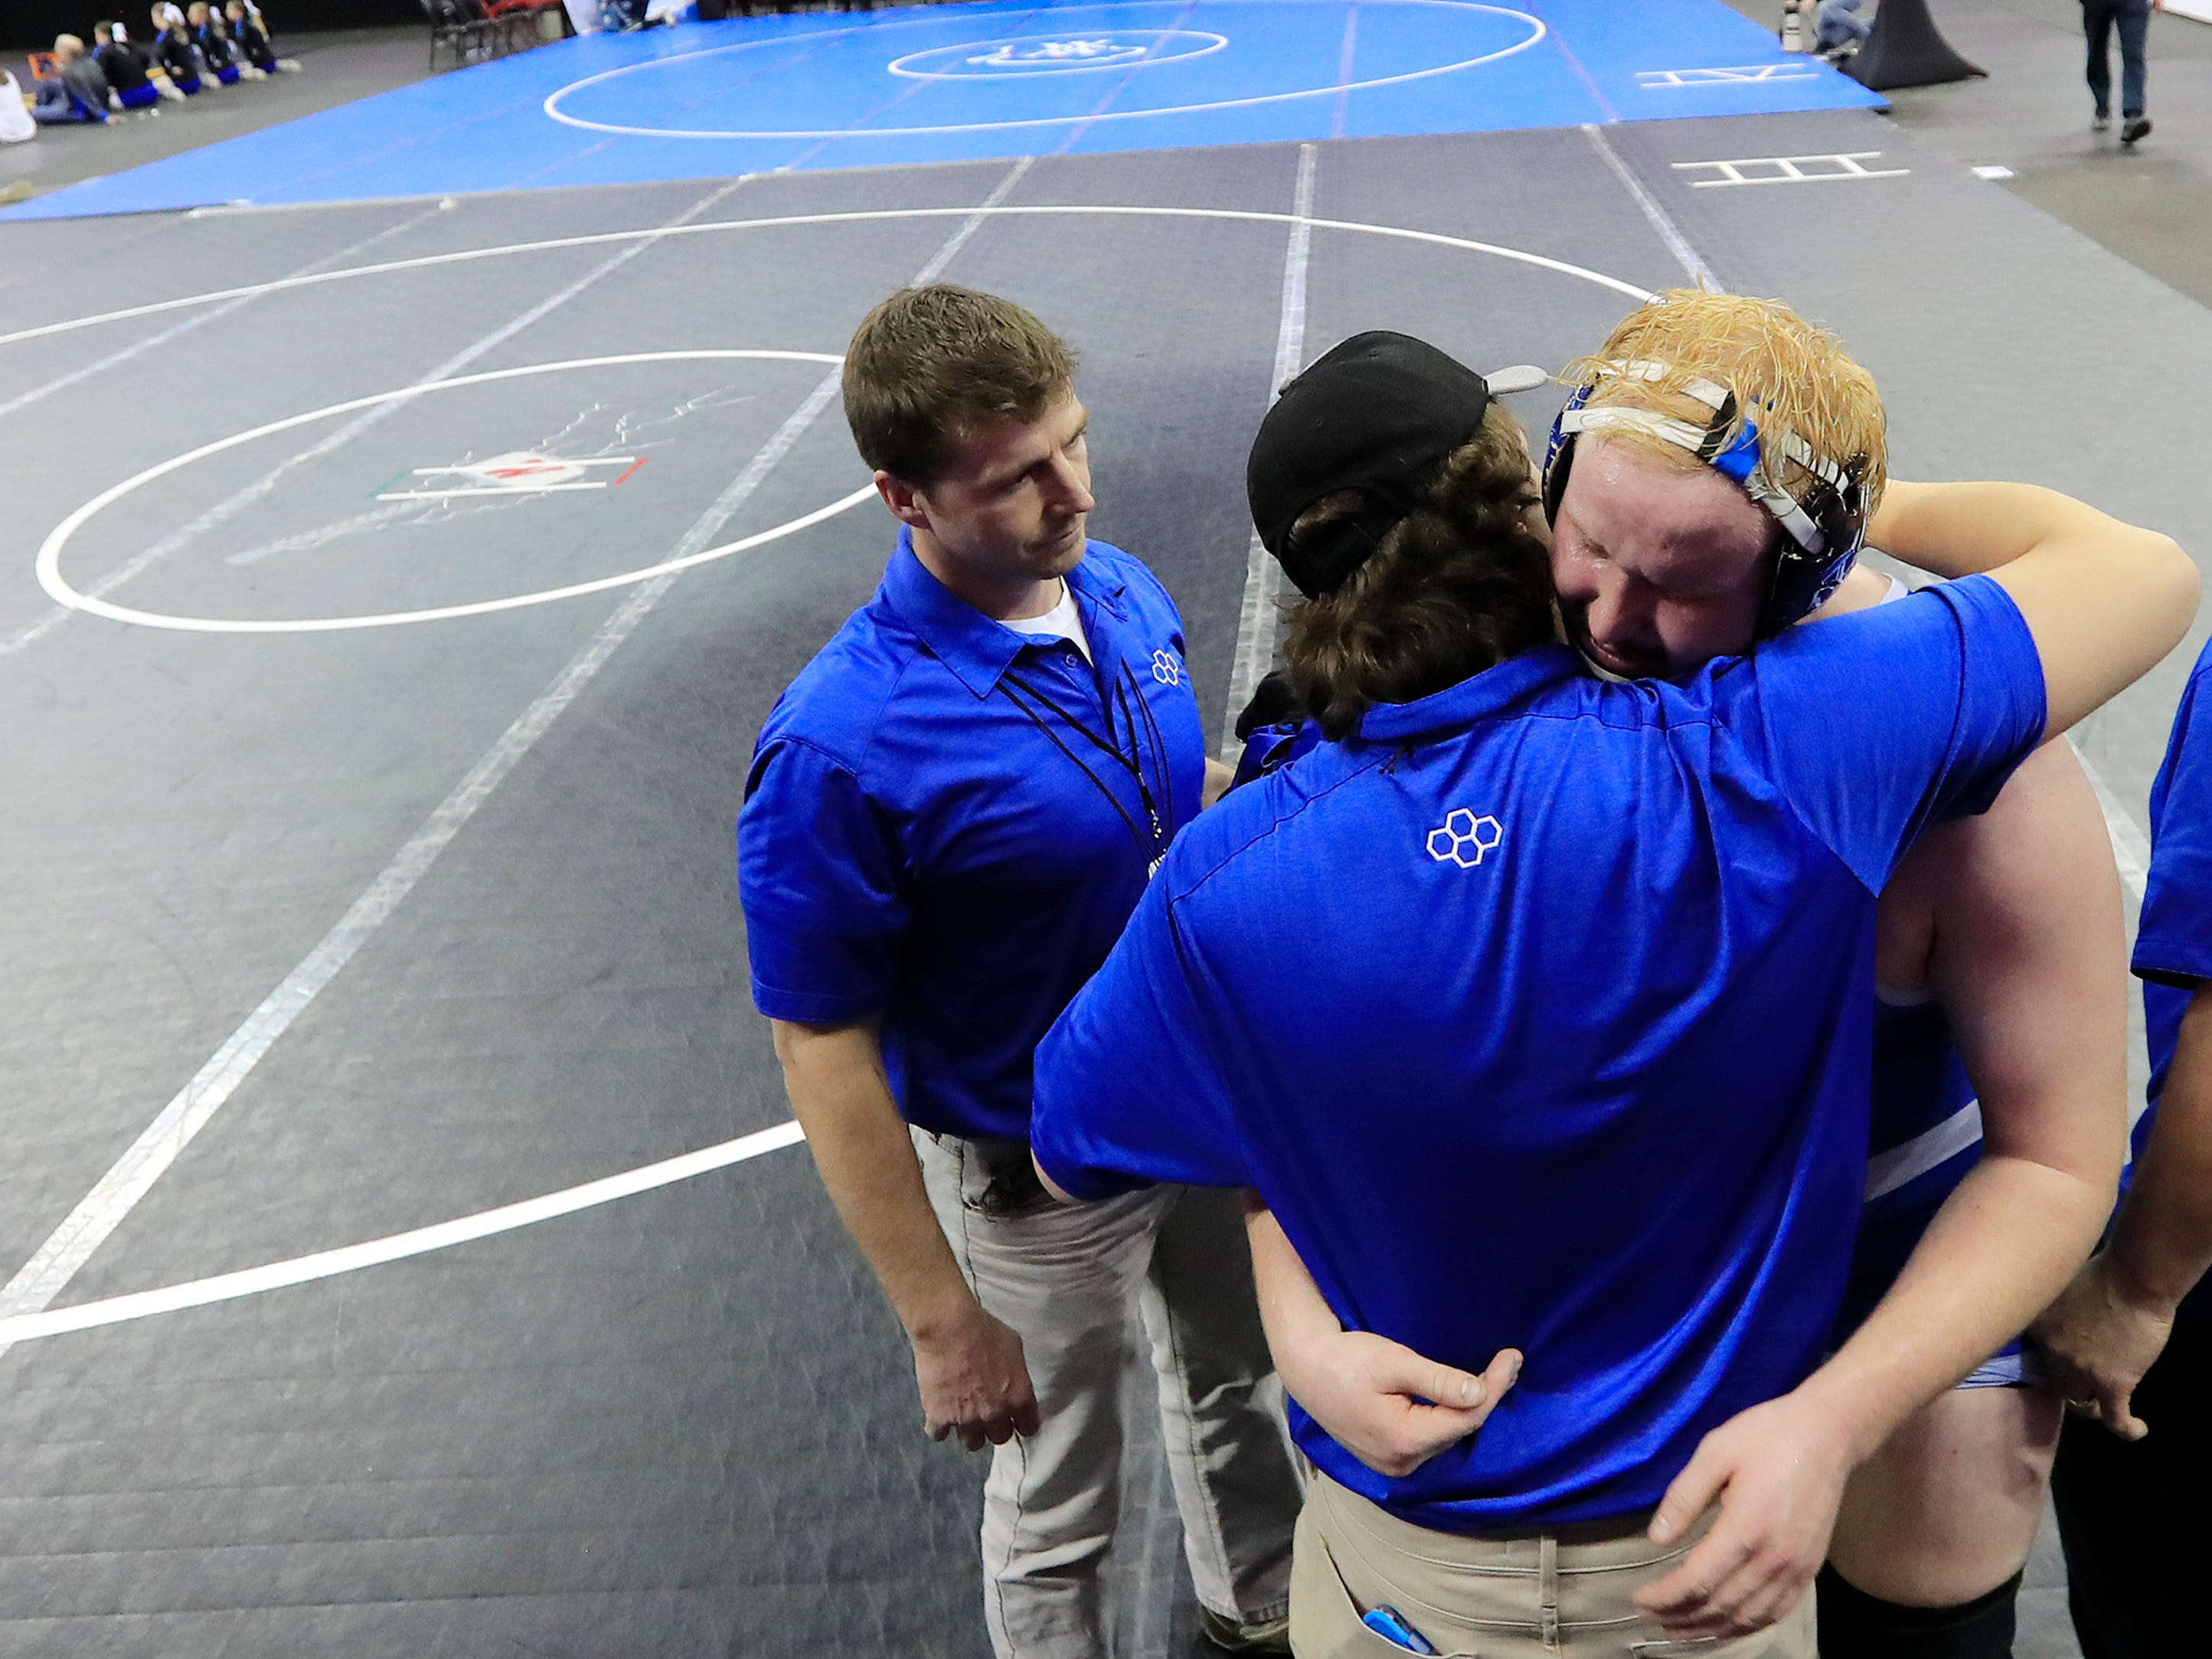 Wrightstown's Ethan Witcpalek hugs his coaches after losing in a Division 2 285-pound preliminary match at the WIAA state individual wrestling tournament at the Kohl Center on Thursday, February 21, 2019 in Madison, Wis.